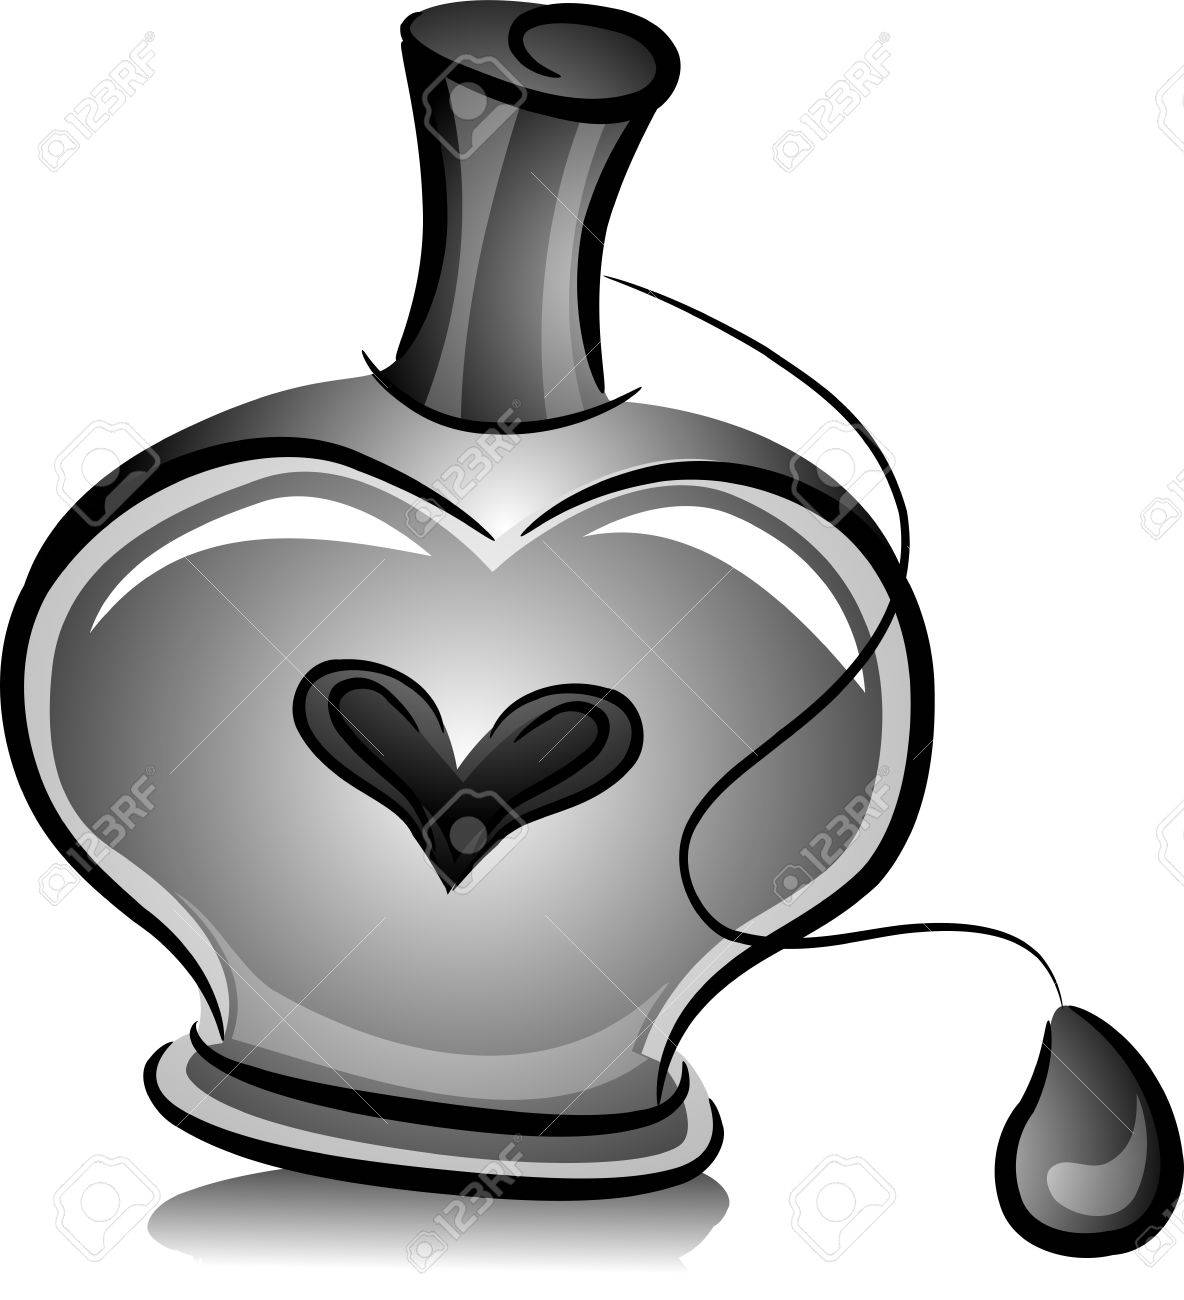 perfume black and white